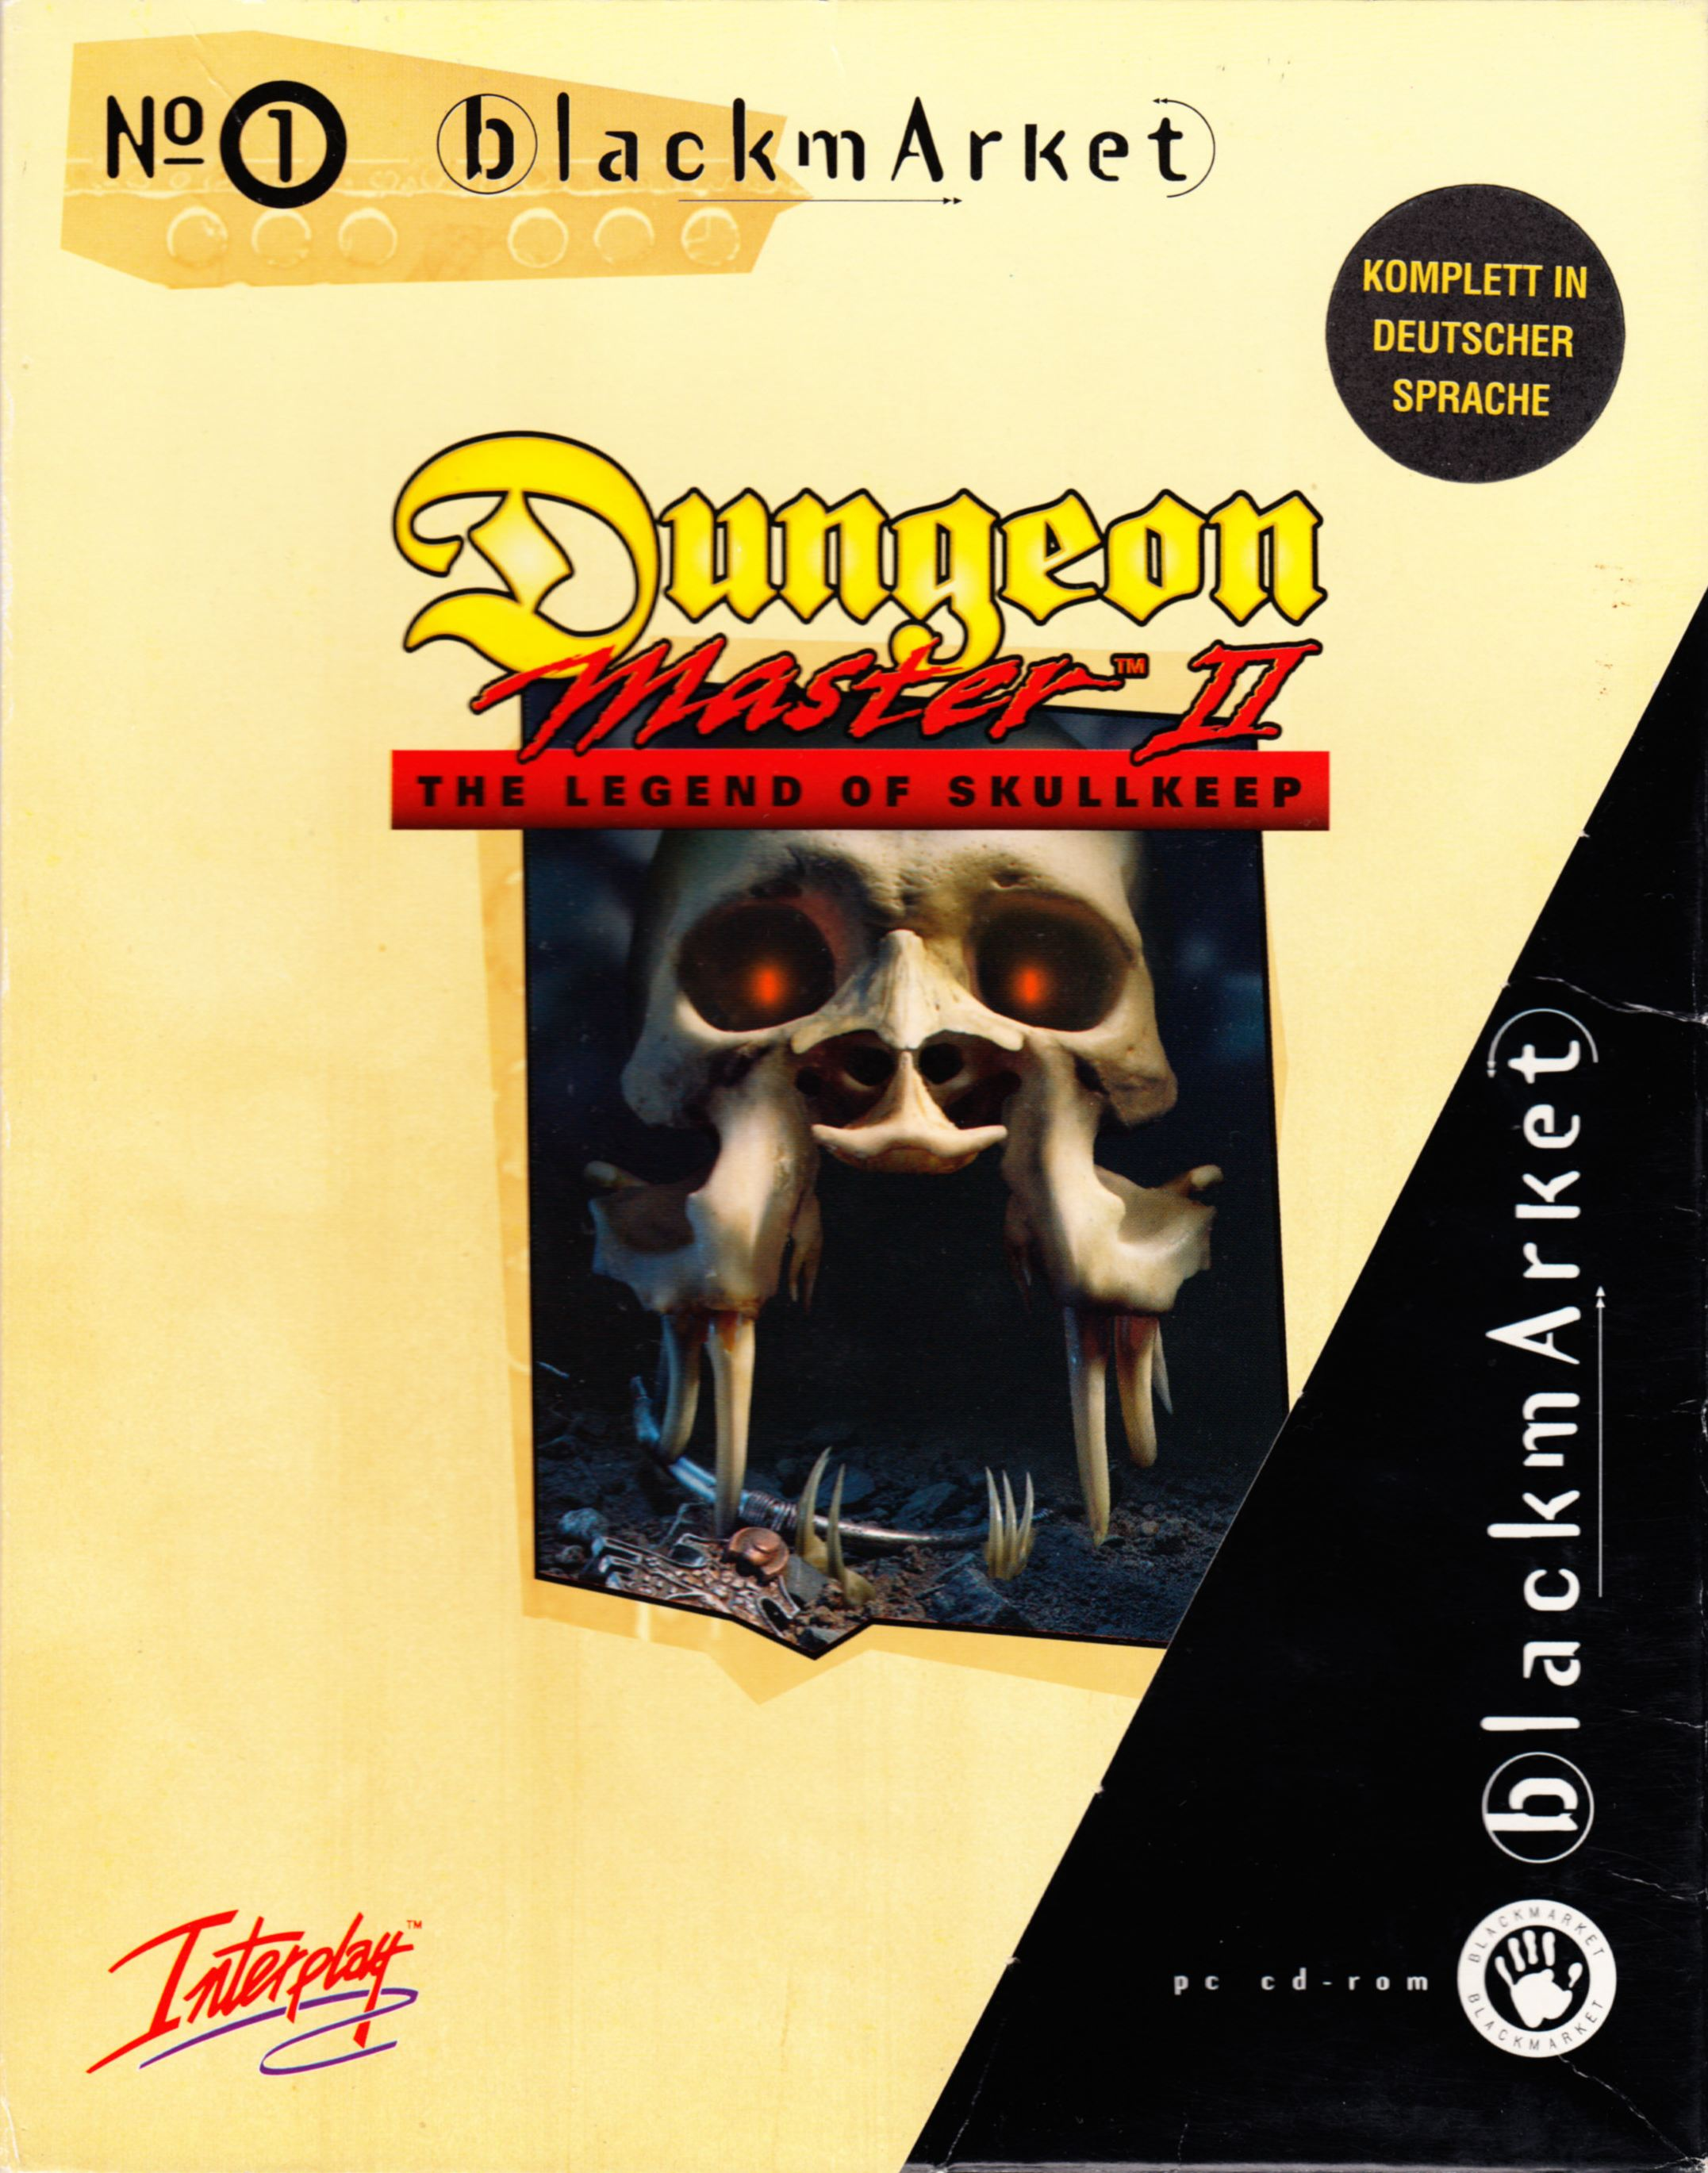 Game - Dungeon Master II - DE - PC - Blackmarket With Manual - Box With Sleeve With Sticker - Front - Scan